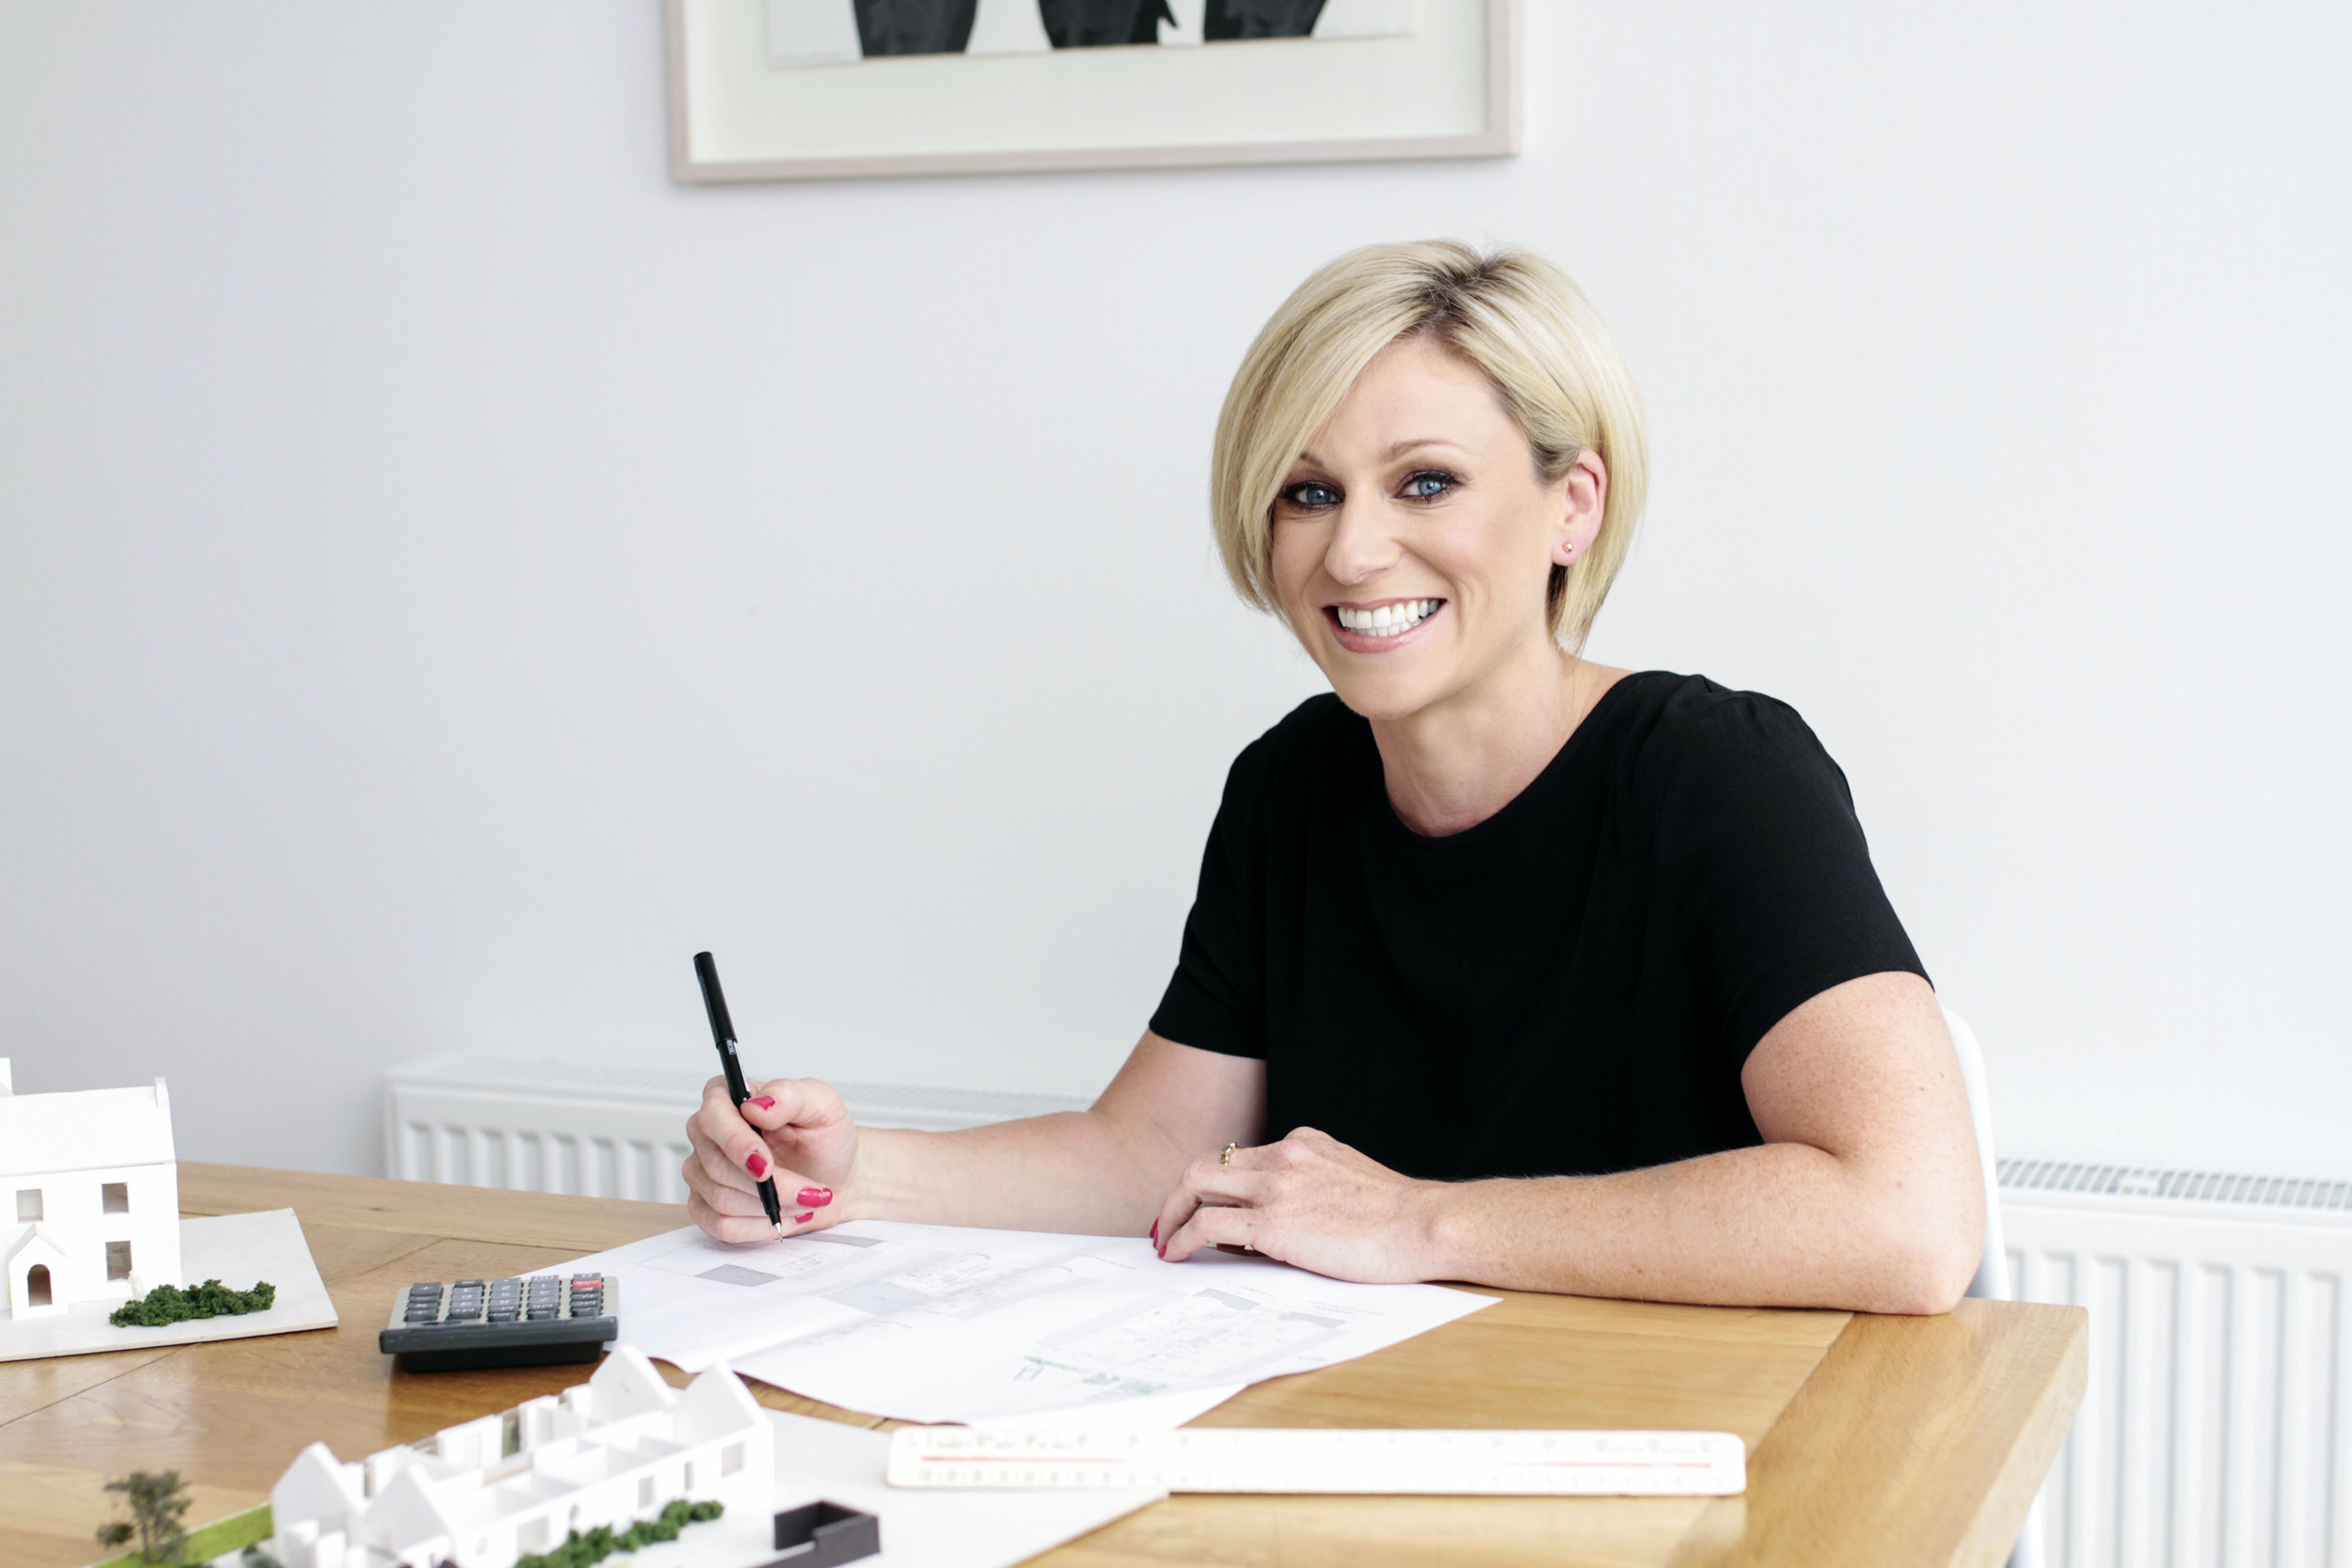 Lisa O'Brien Quantity Surveyor Room To Improve, Series 10